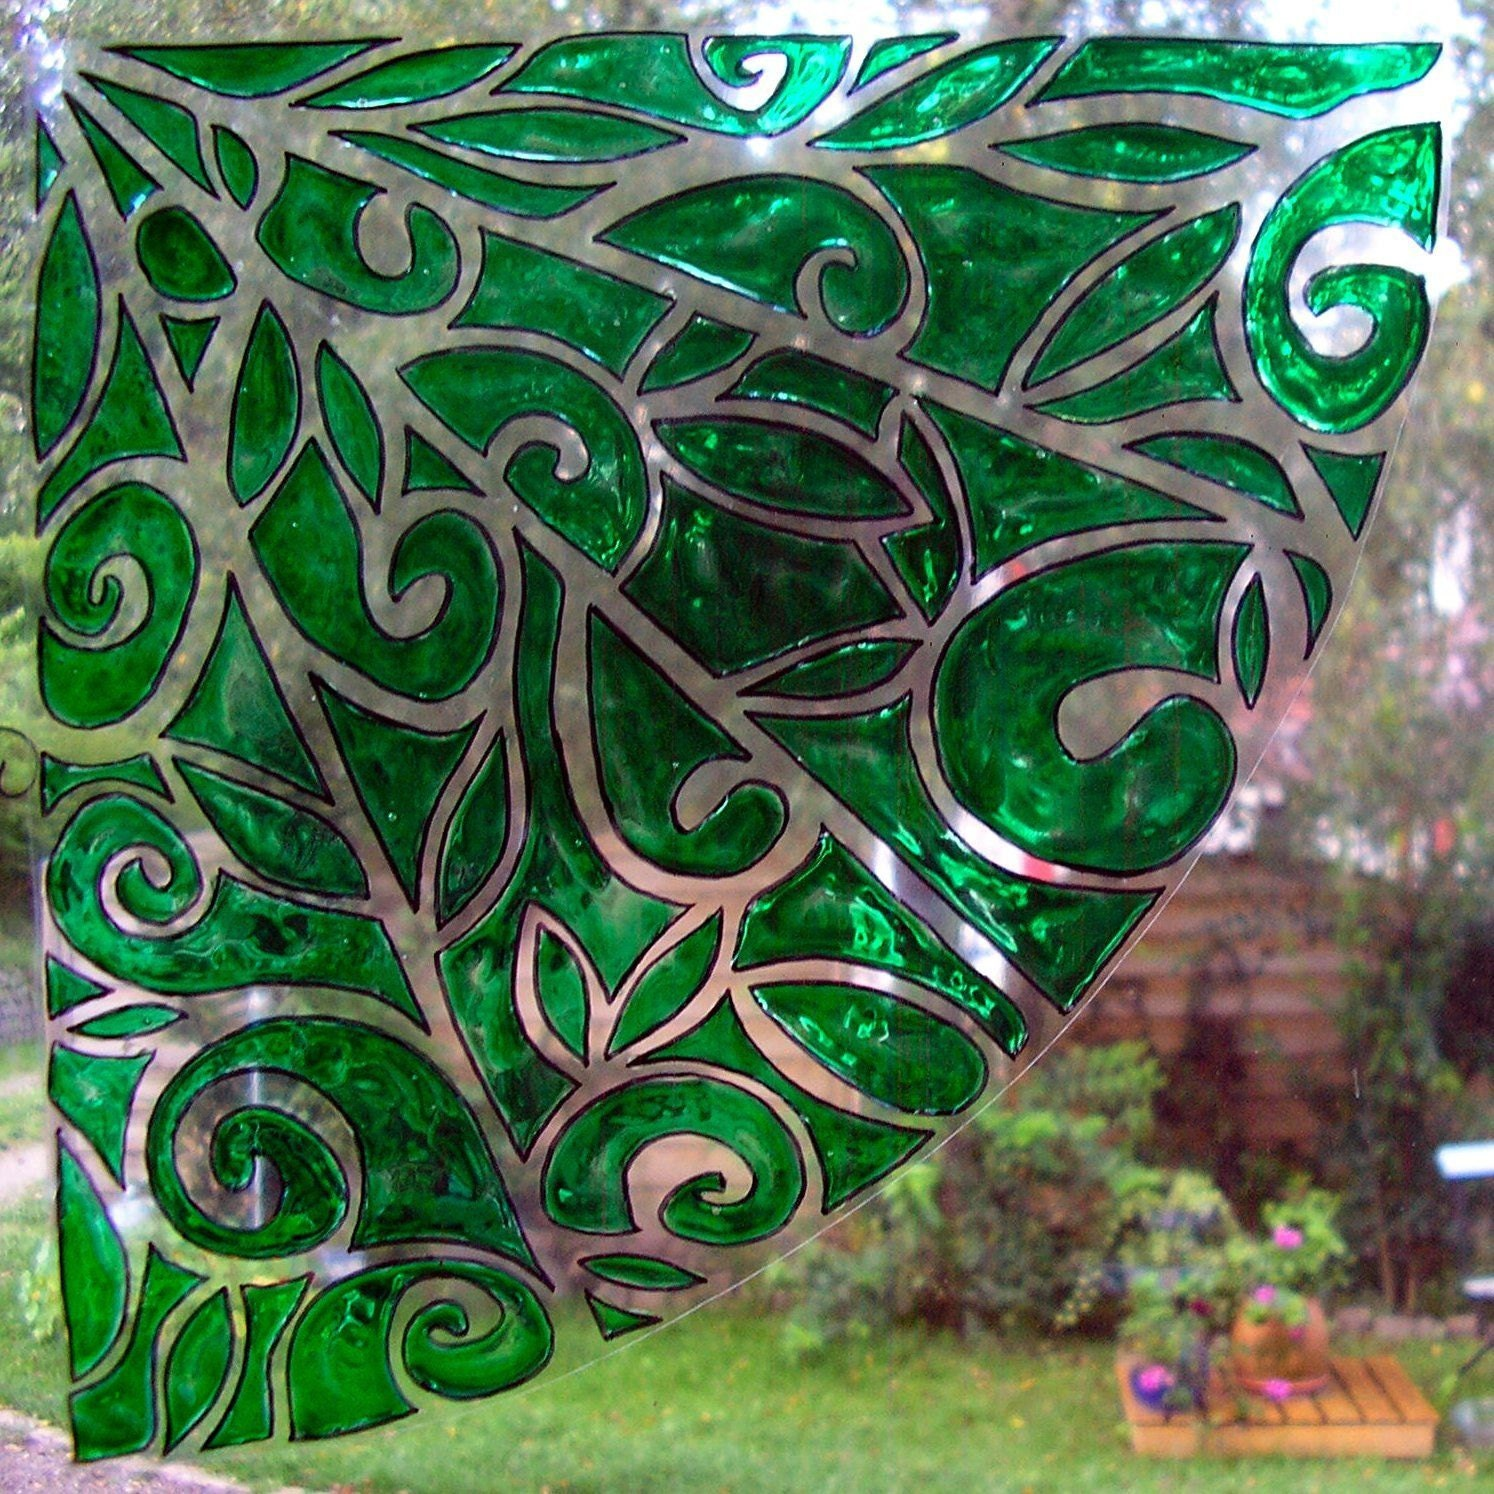 wicoart sticker window cling stained glass vitrail green. Black Bedroom Furniture Sets. Home Design Ideas